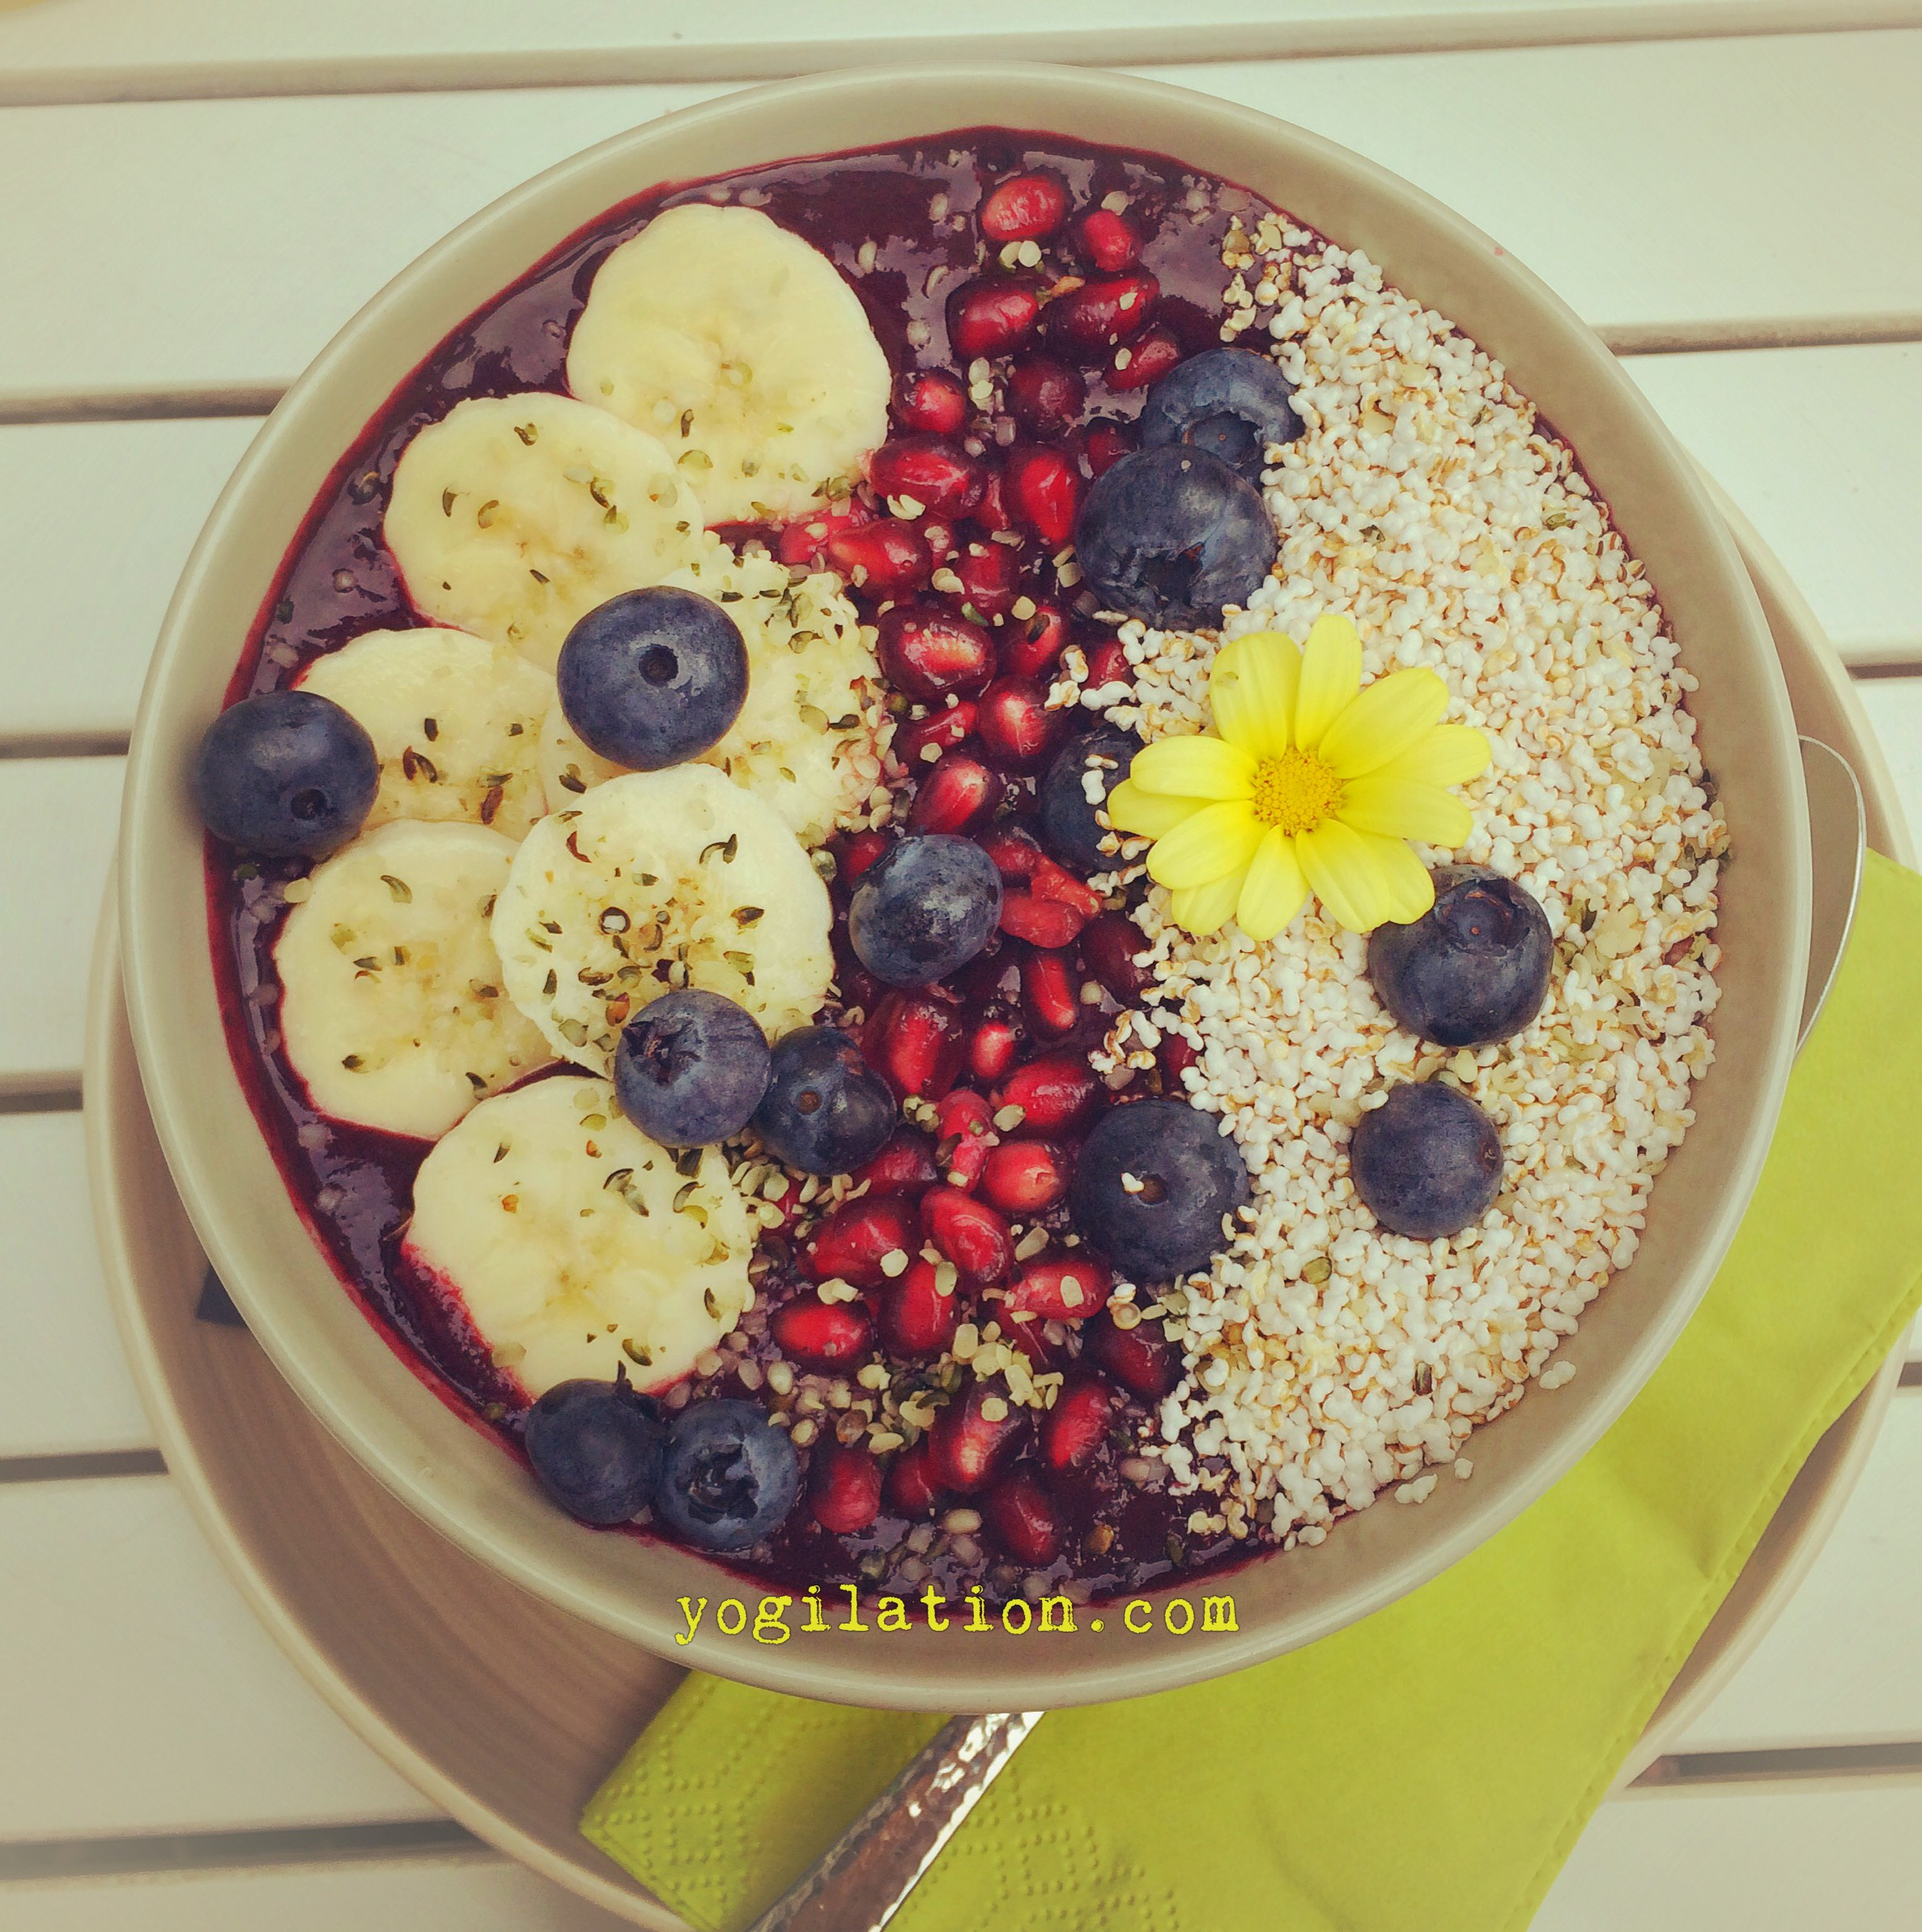 Acai bowl with hemp seeds, Chia, banana, and pomegranate